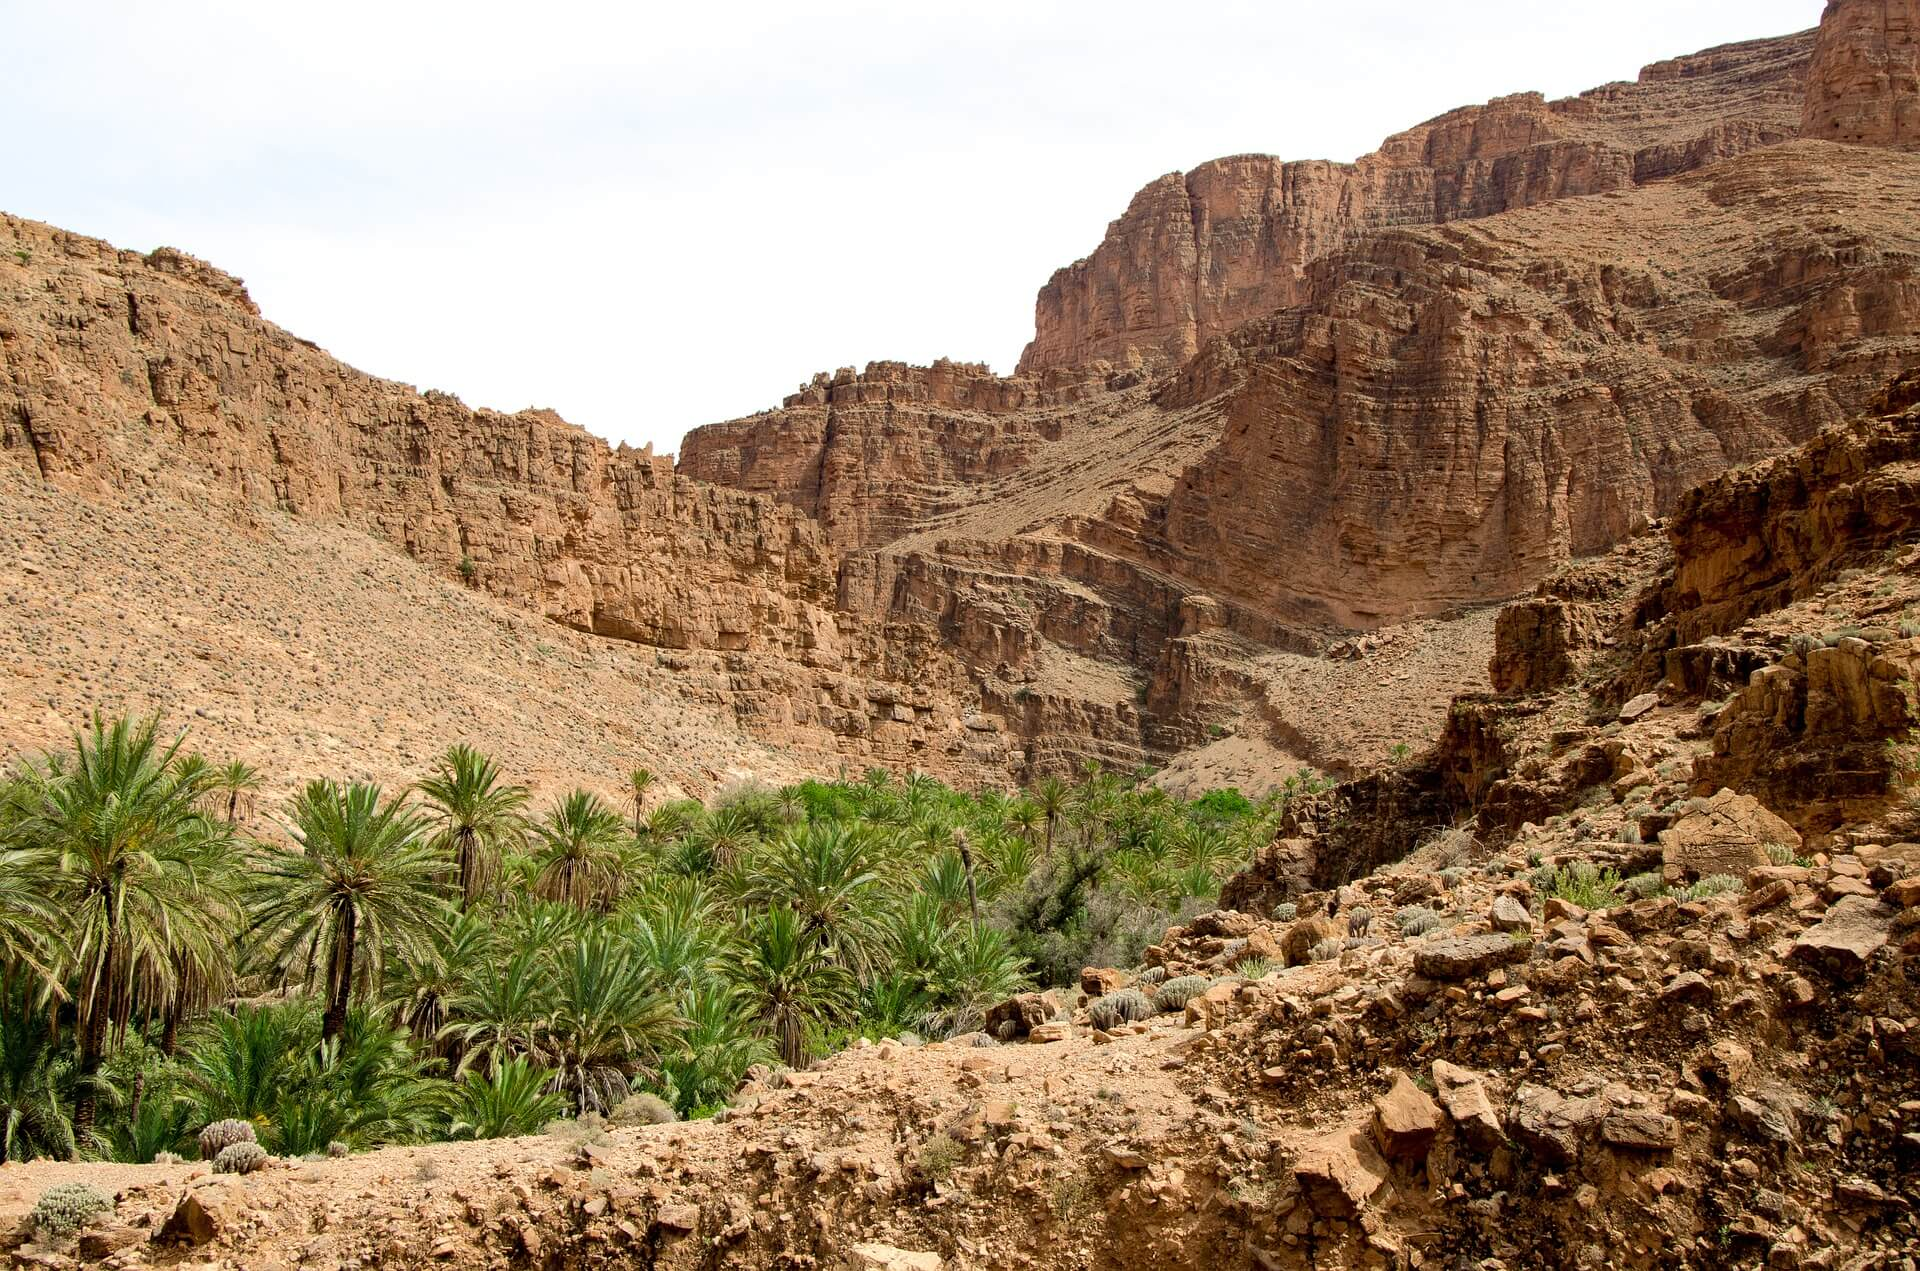 Sahara Desert Tour - Top Ten Things To Do in Morocco - Visit a Desert Oasis